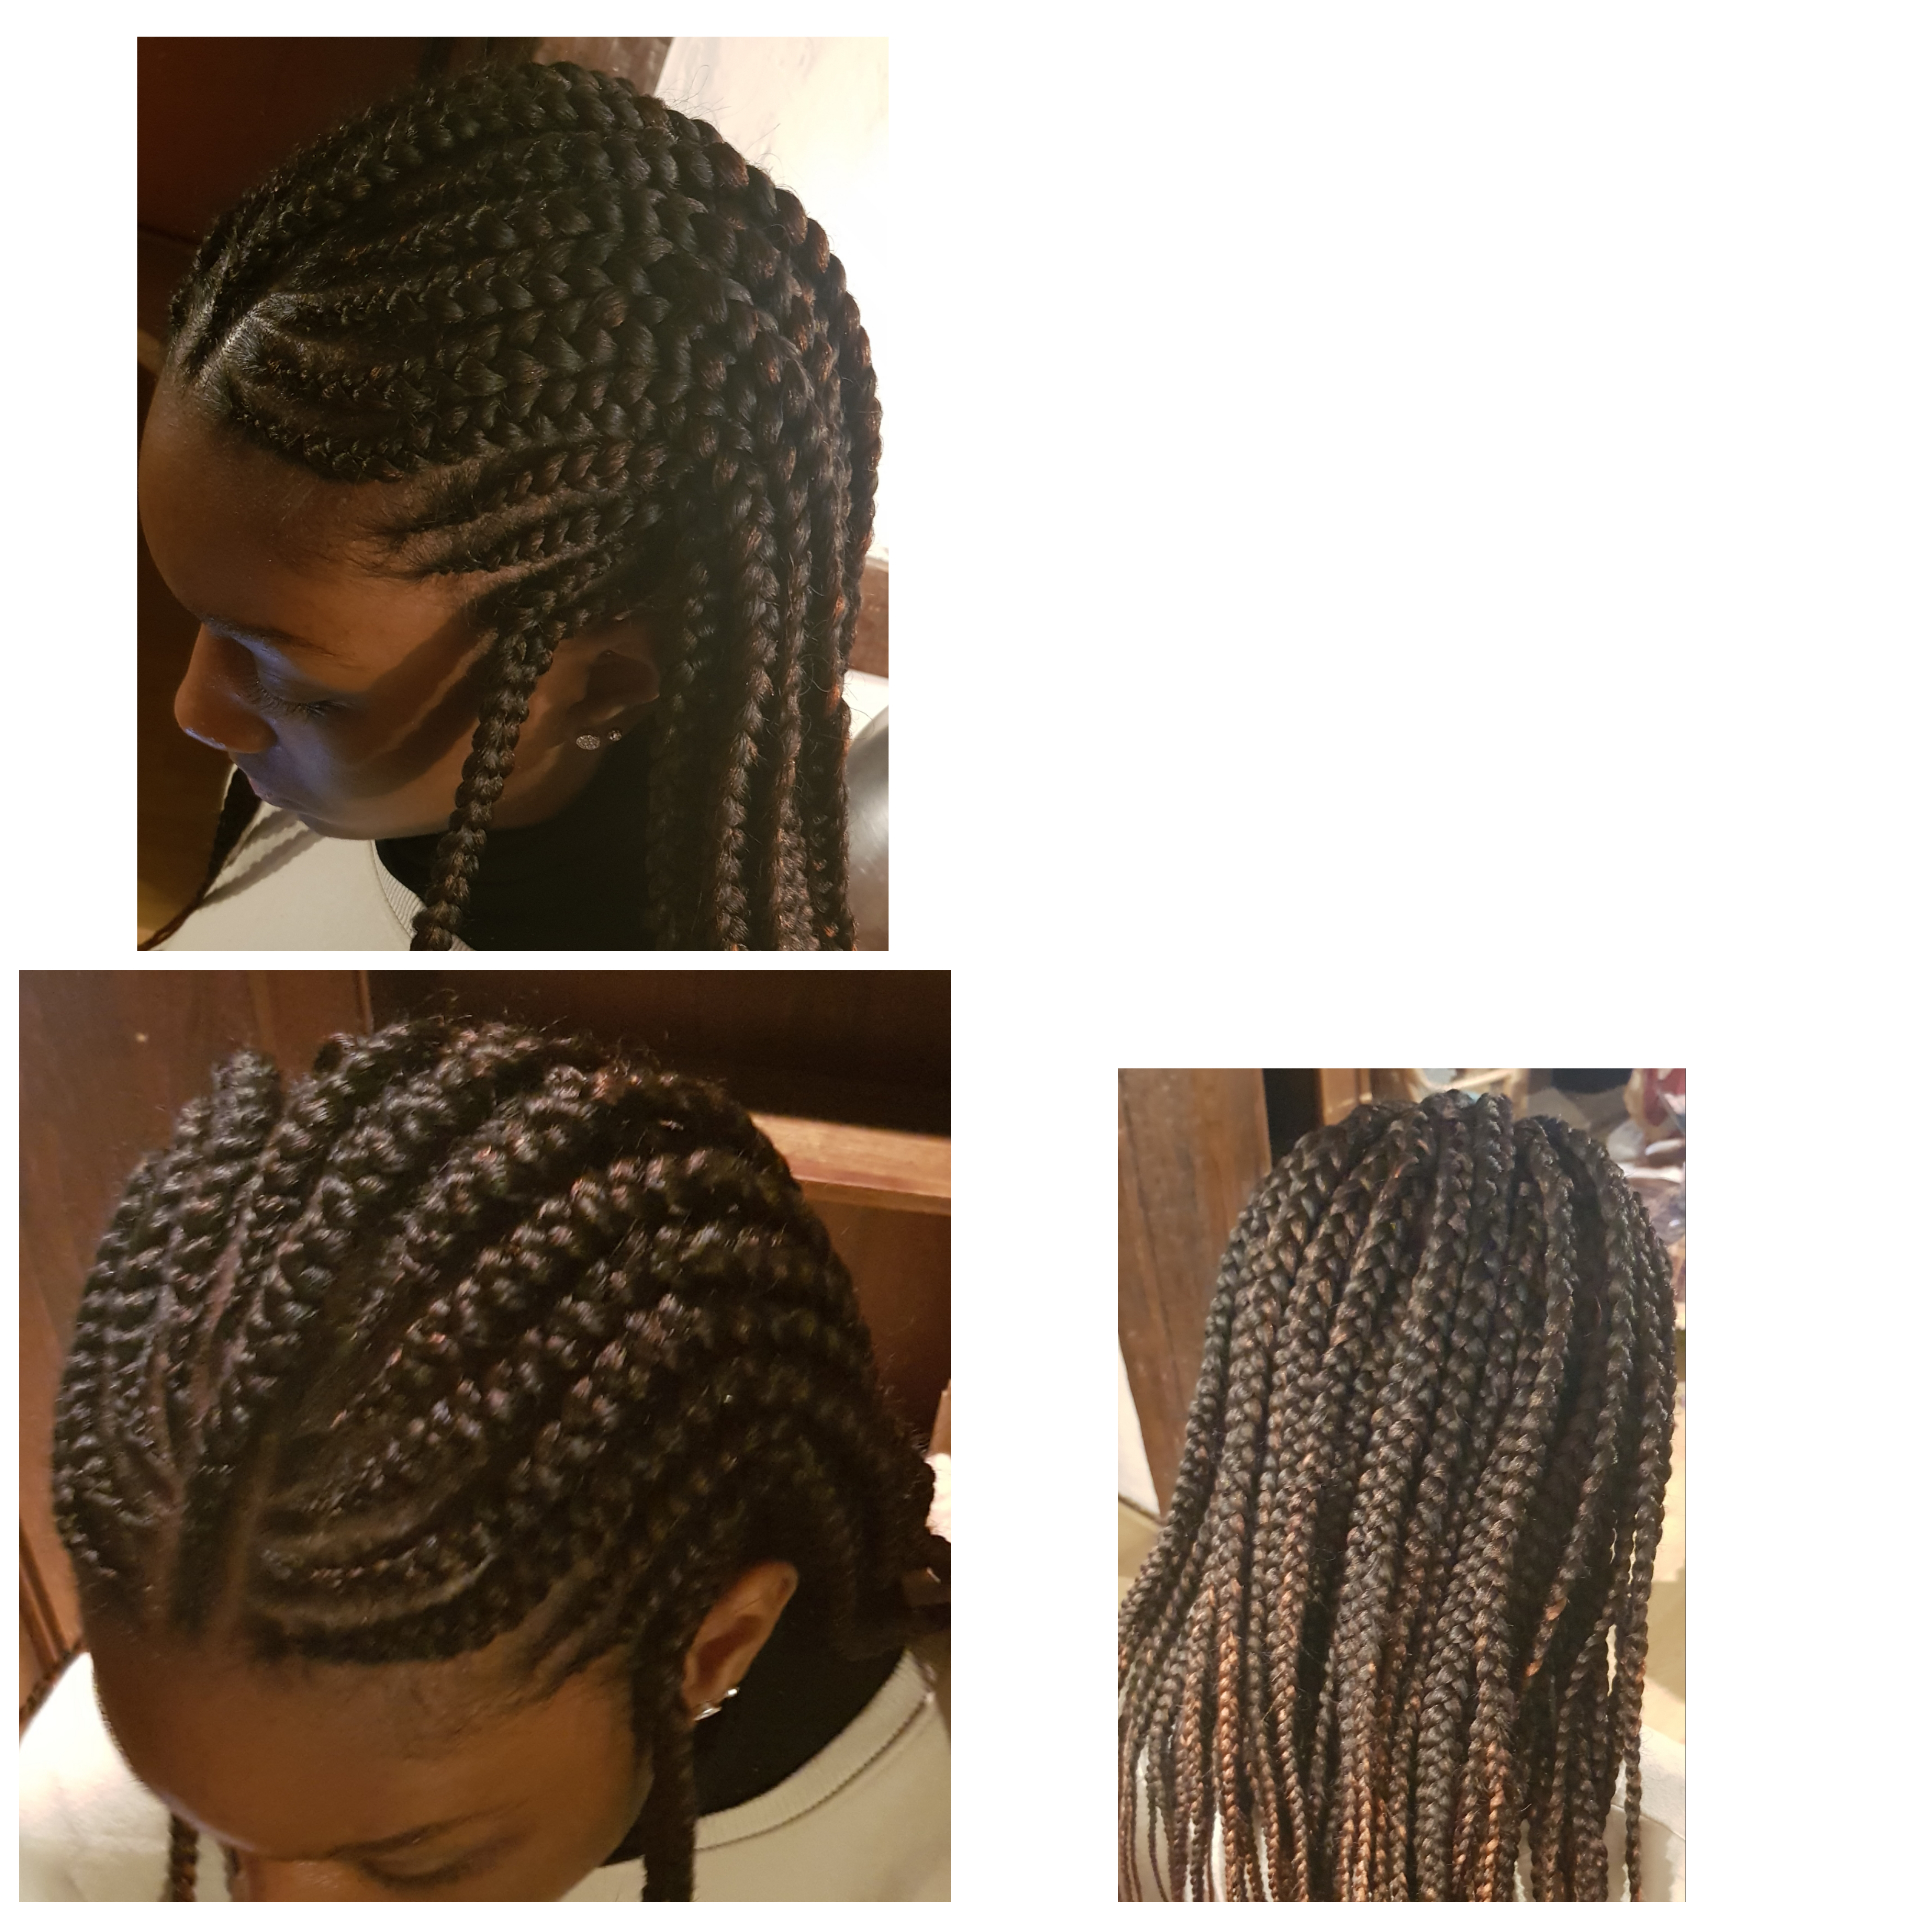 salon de coiffure afro tresse tresses box braids crochet braids vanilles tissages paris 75 77 78 91 92 93 94 95 ZQEFACEF